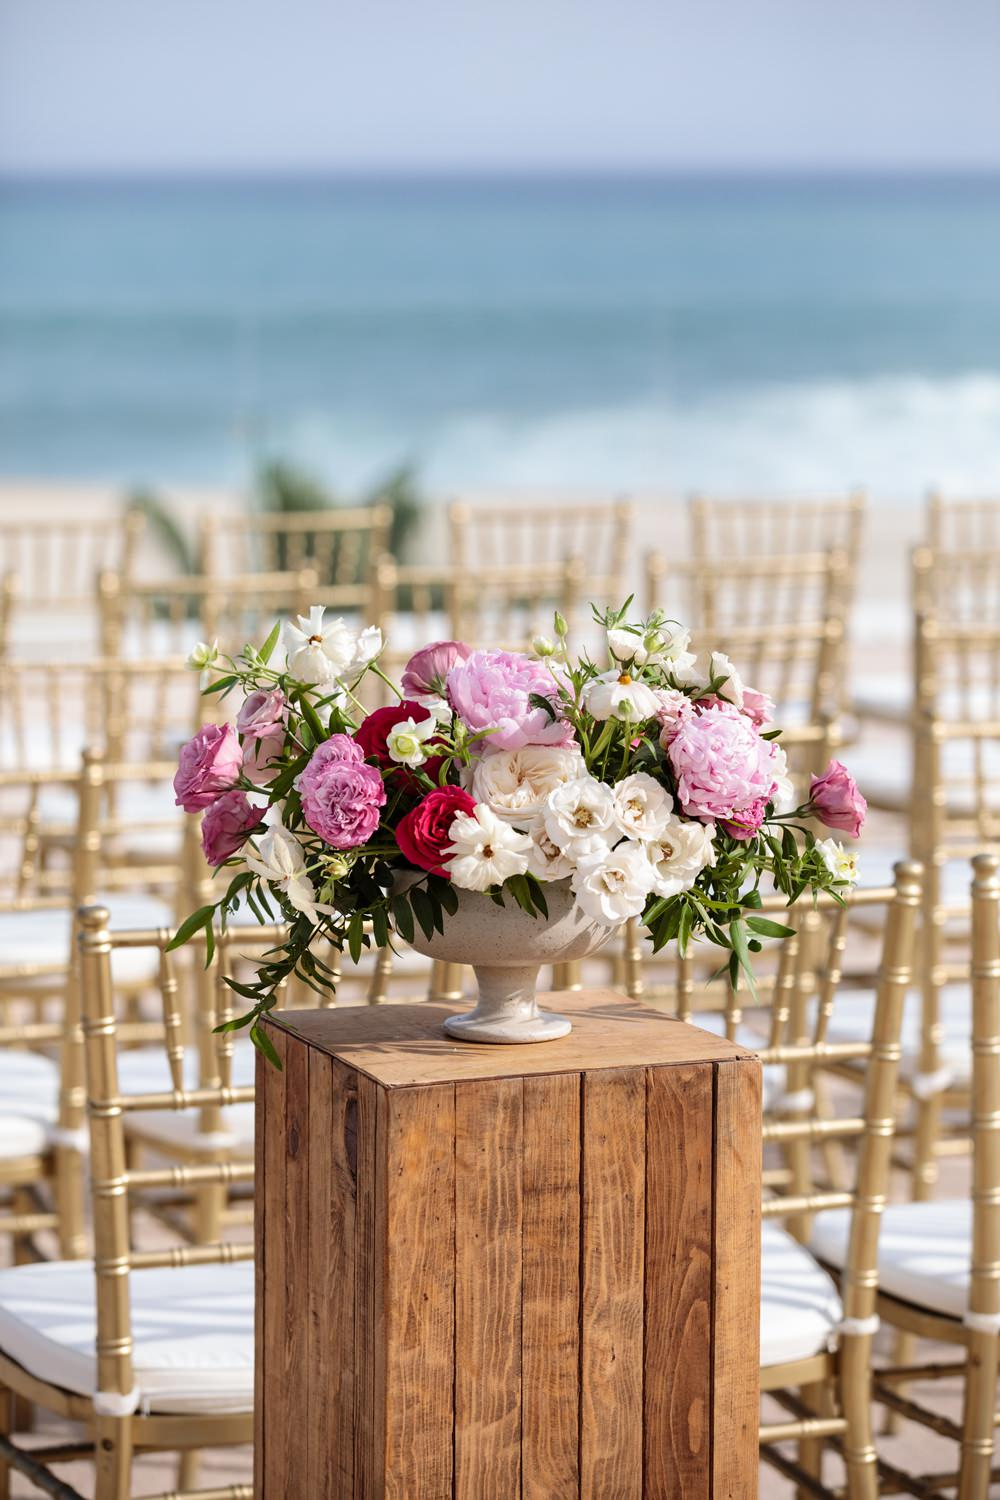 Flowers Floral Urn Arrangement Pink Peony Red Rose Cream Foliage Los Cabos Wedding Anna Gomes Photo